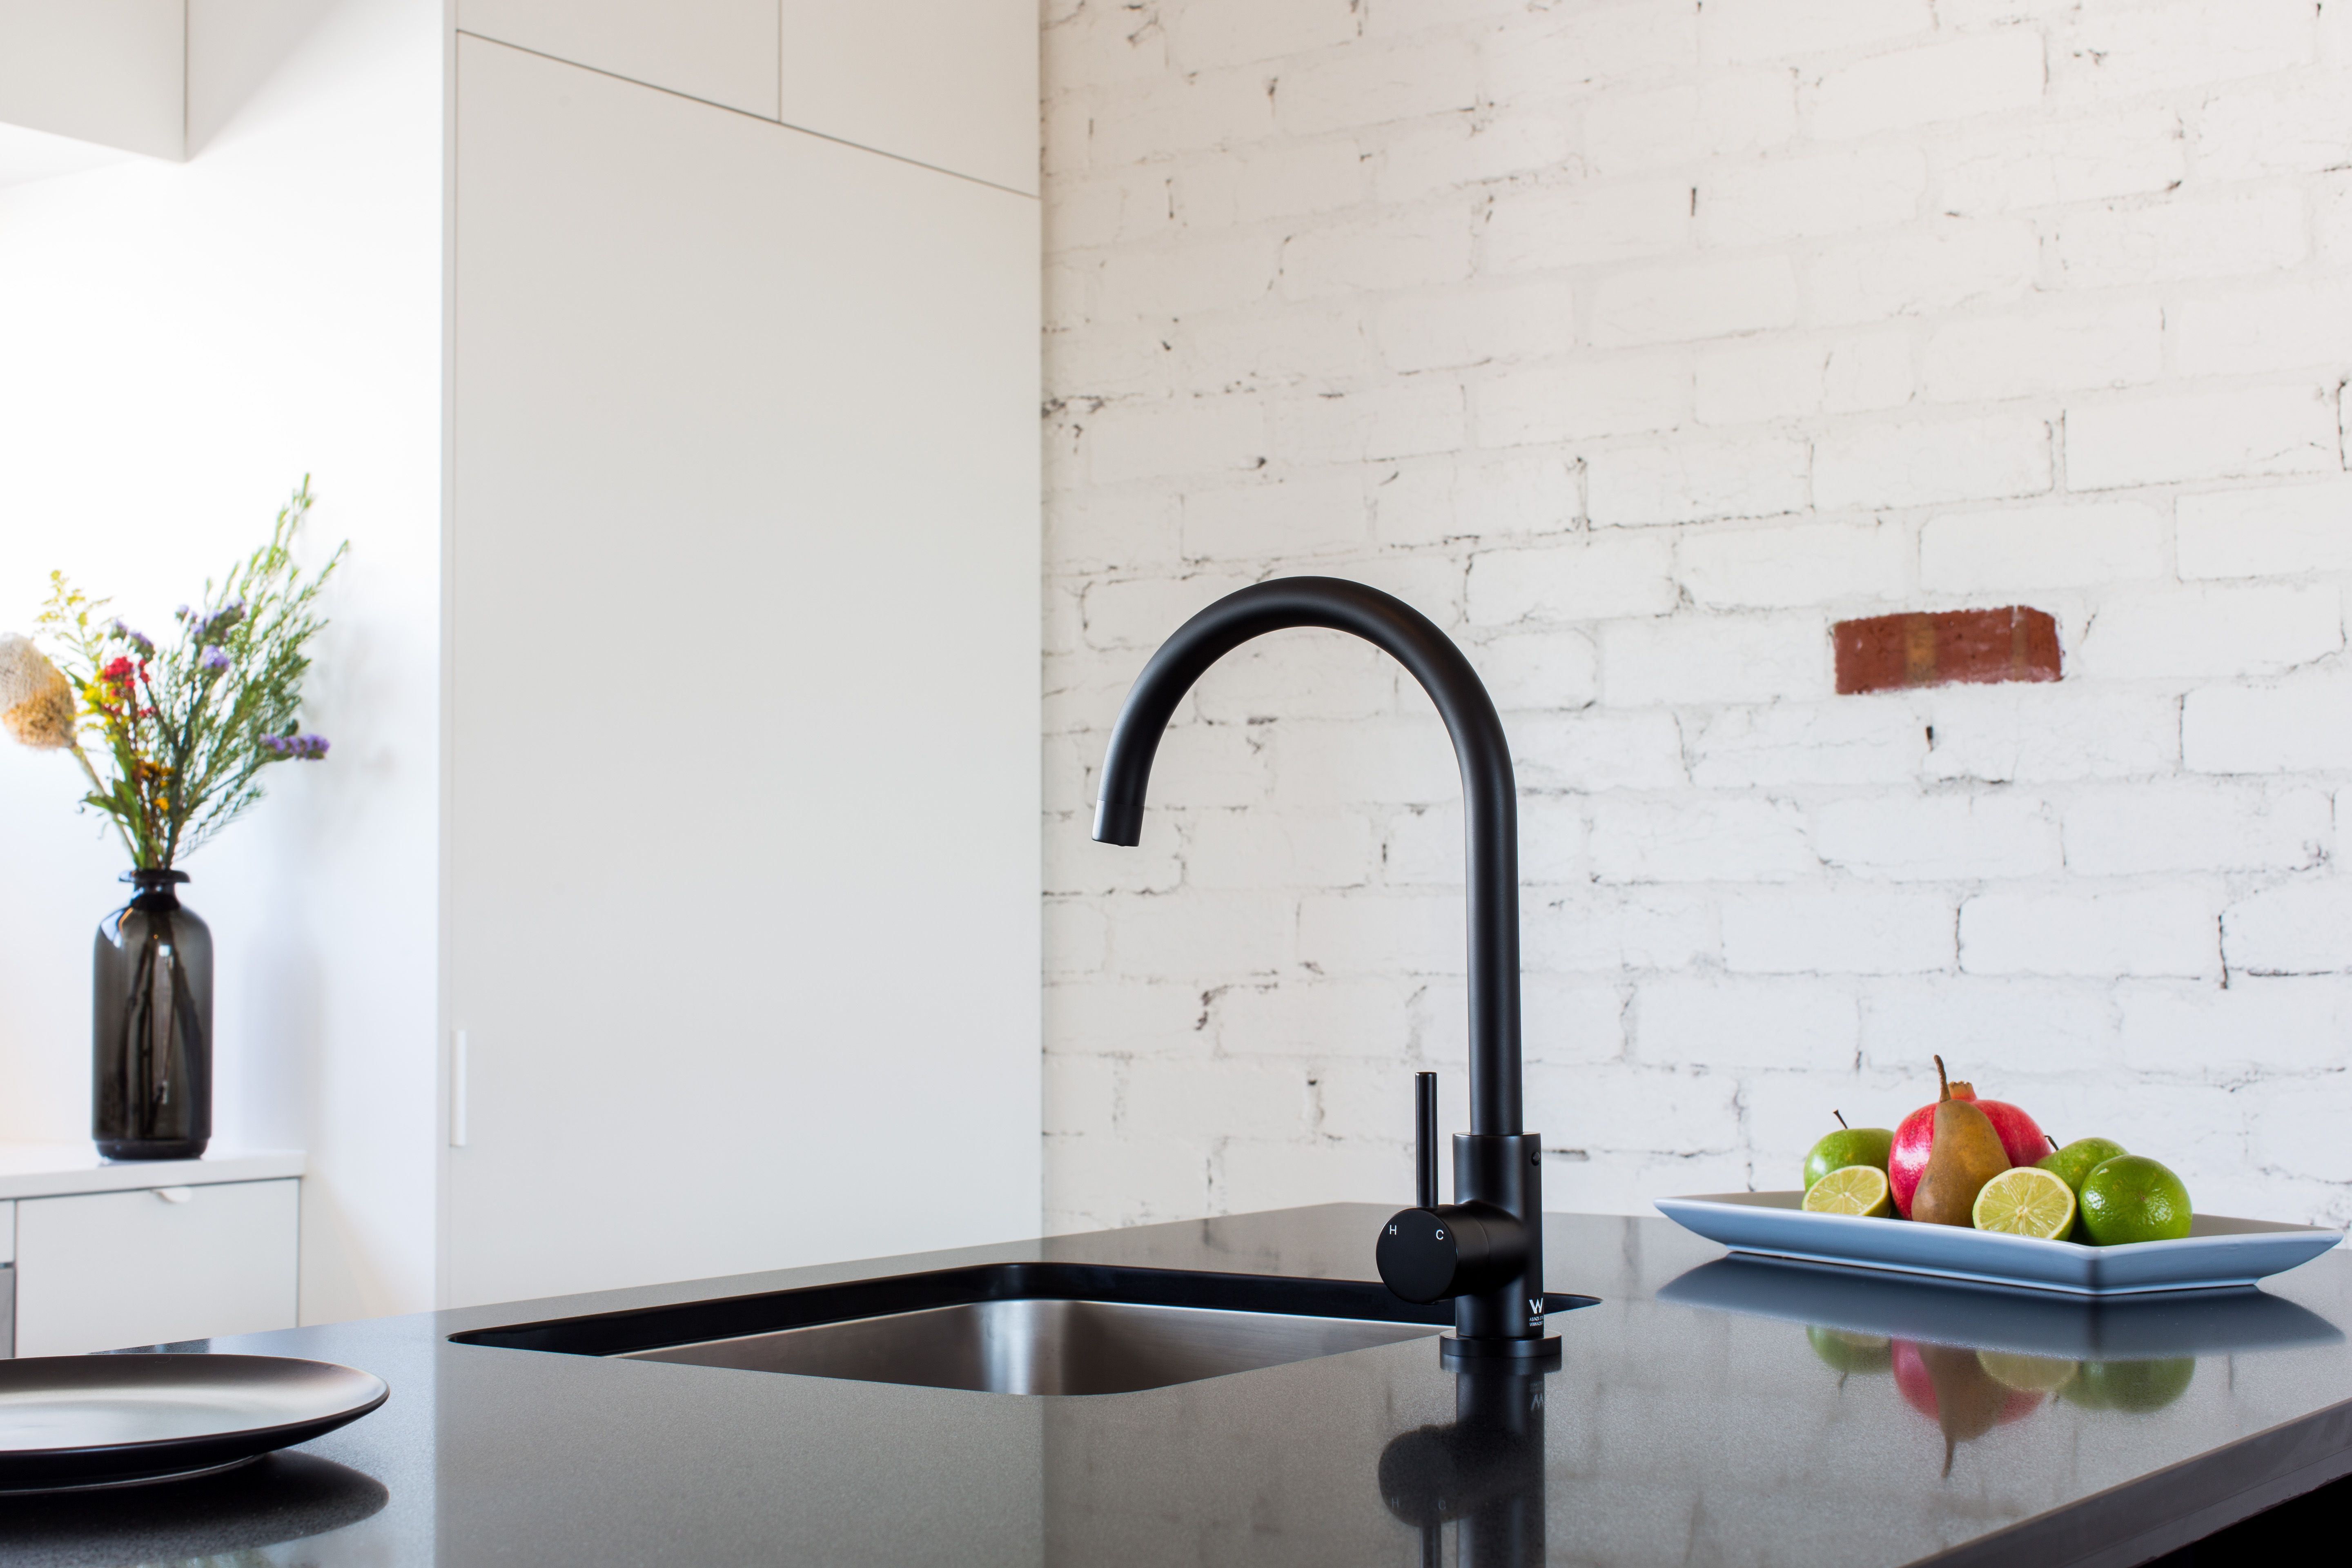 Meir's Round Matte Black Kitchen Mixer. For more, visit